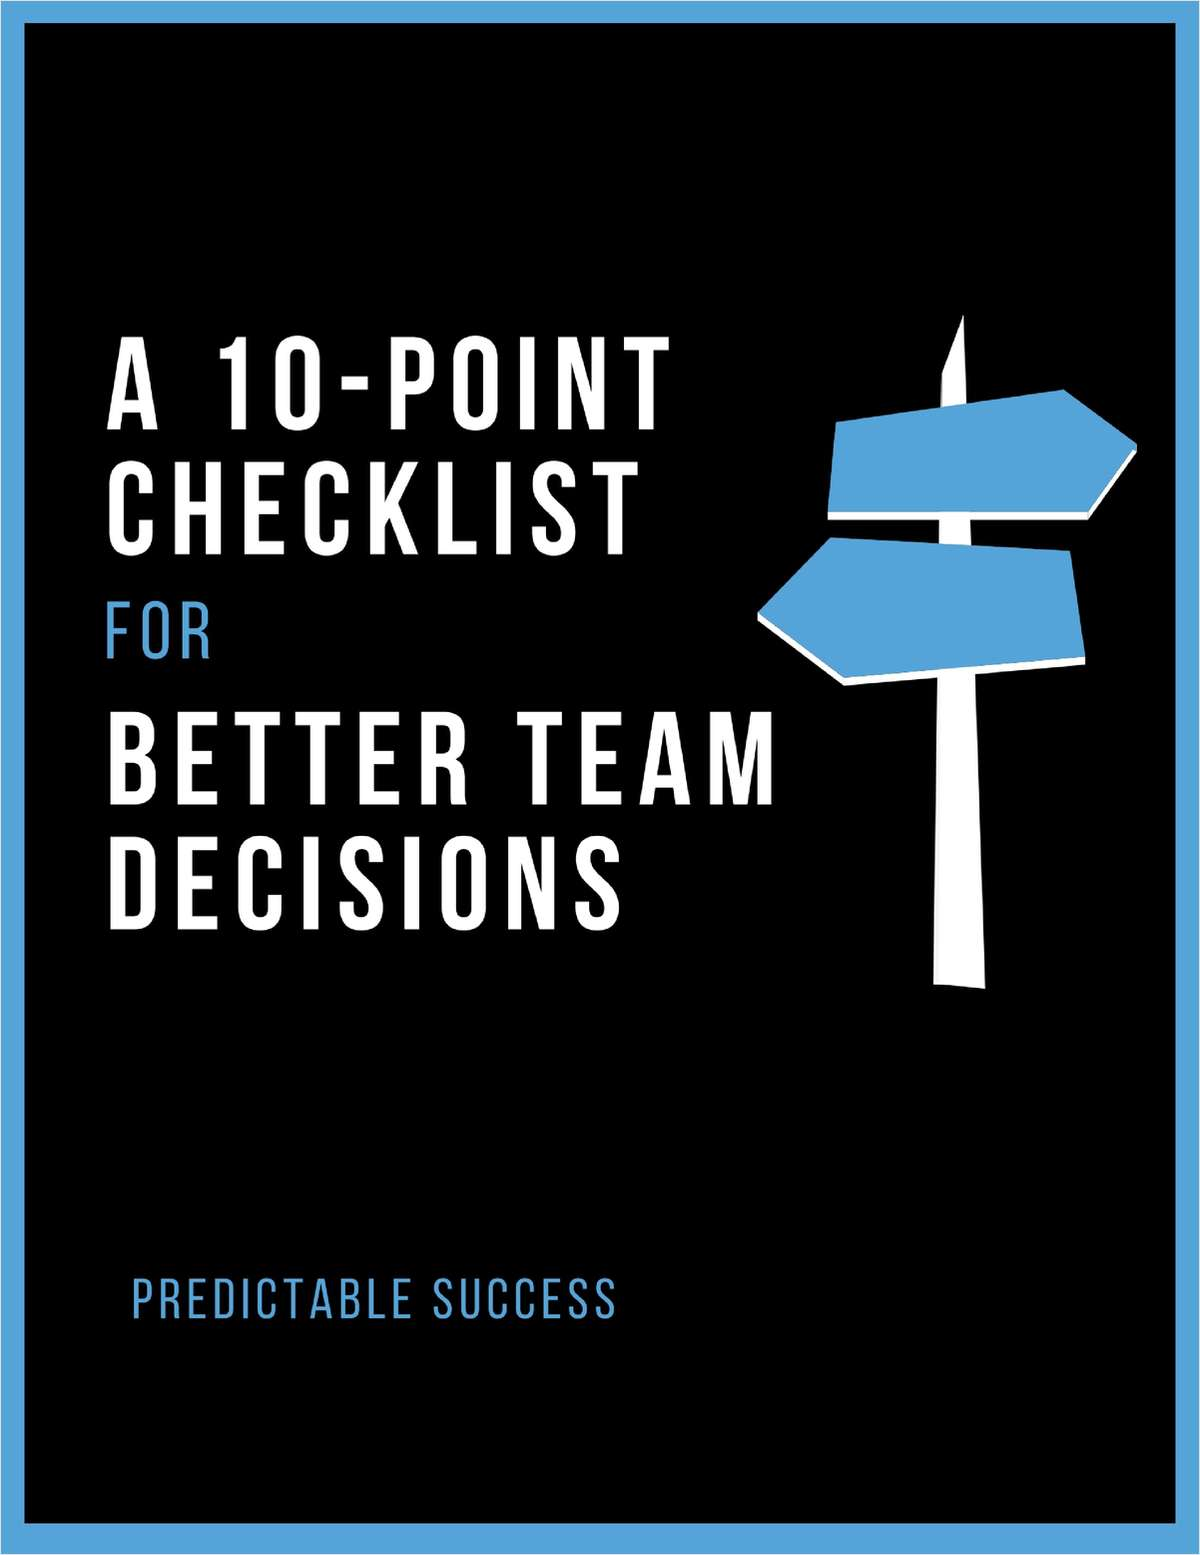 A 10-Point Checklist for Better Team Decisions